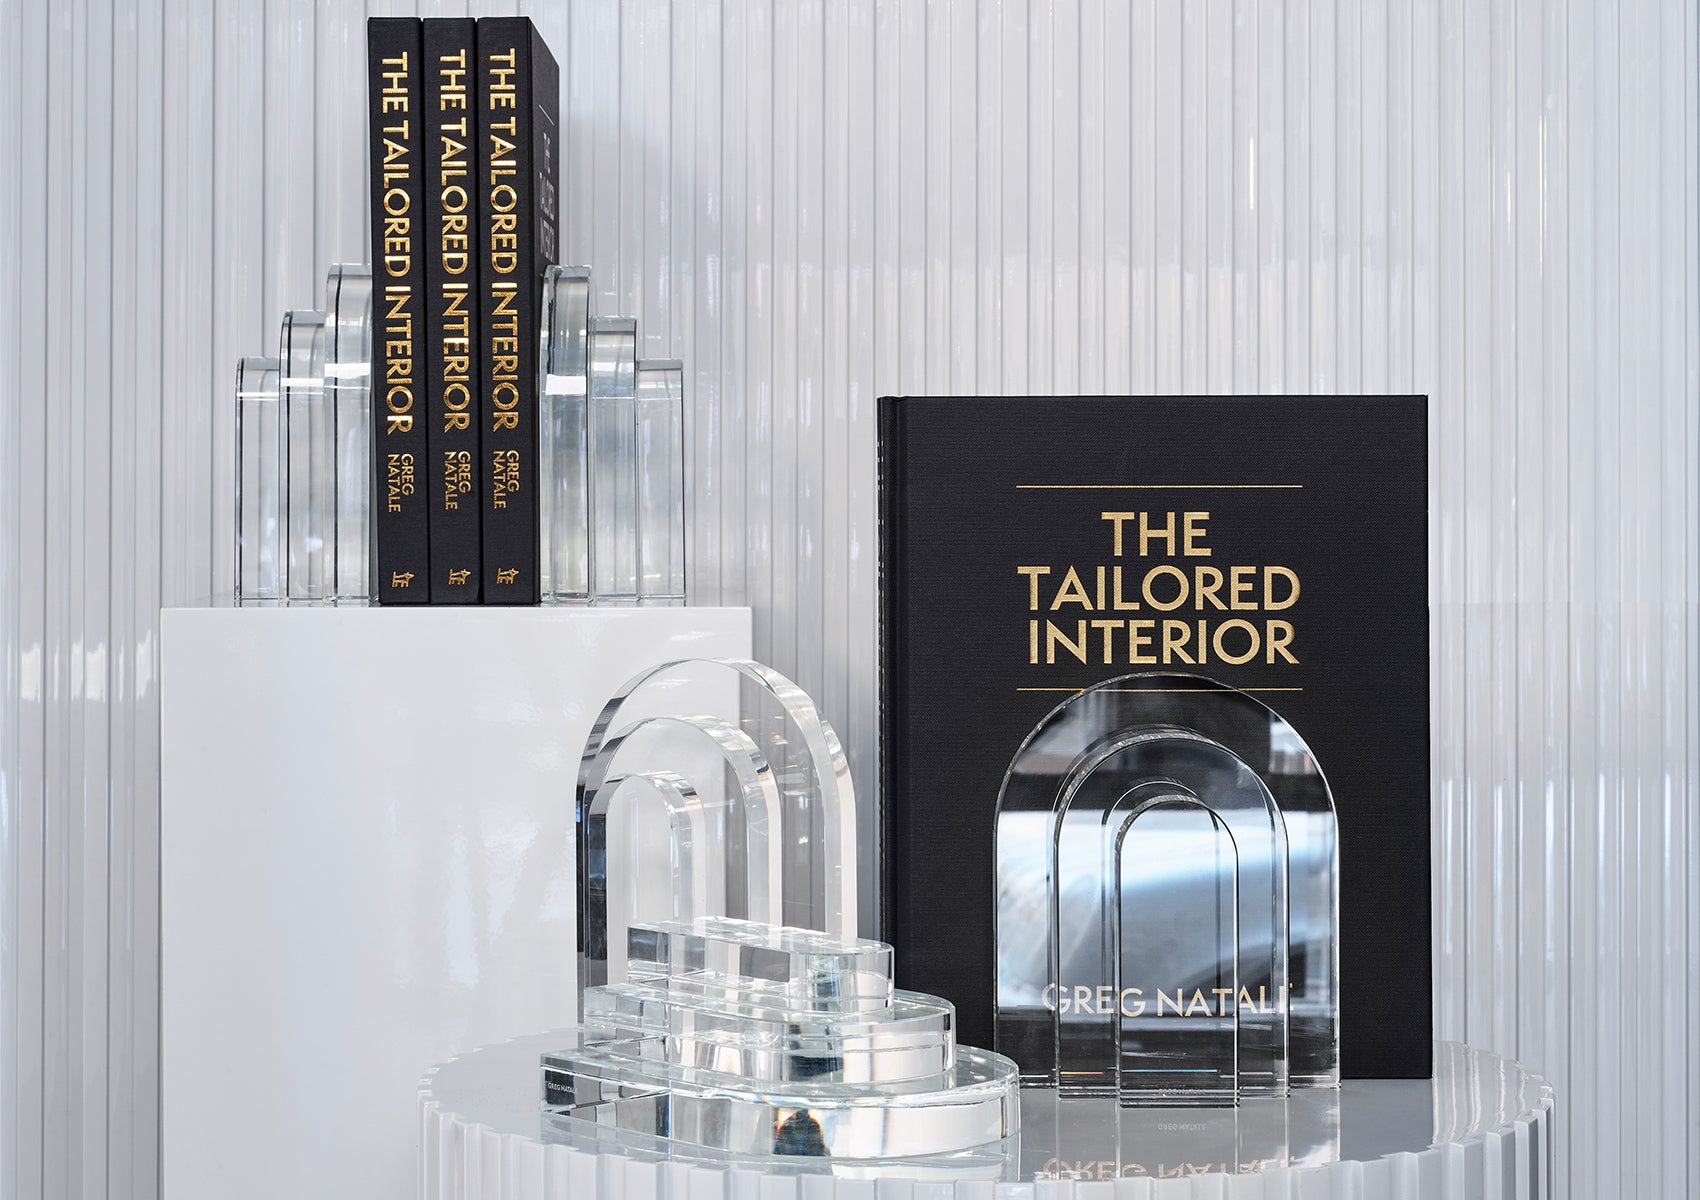 PALAZZO CRYSTAL BOOKENDS